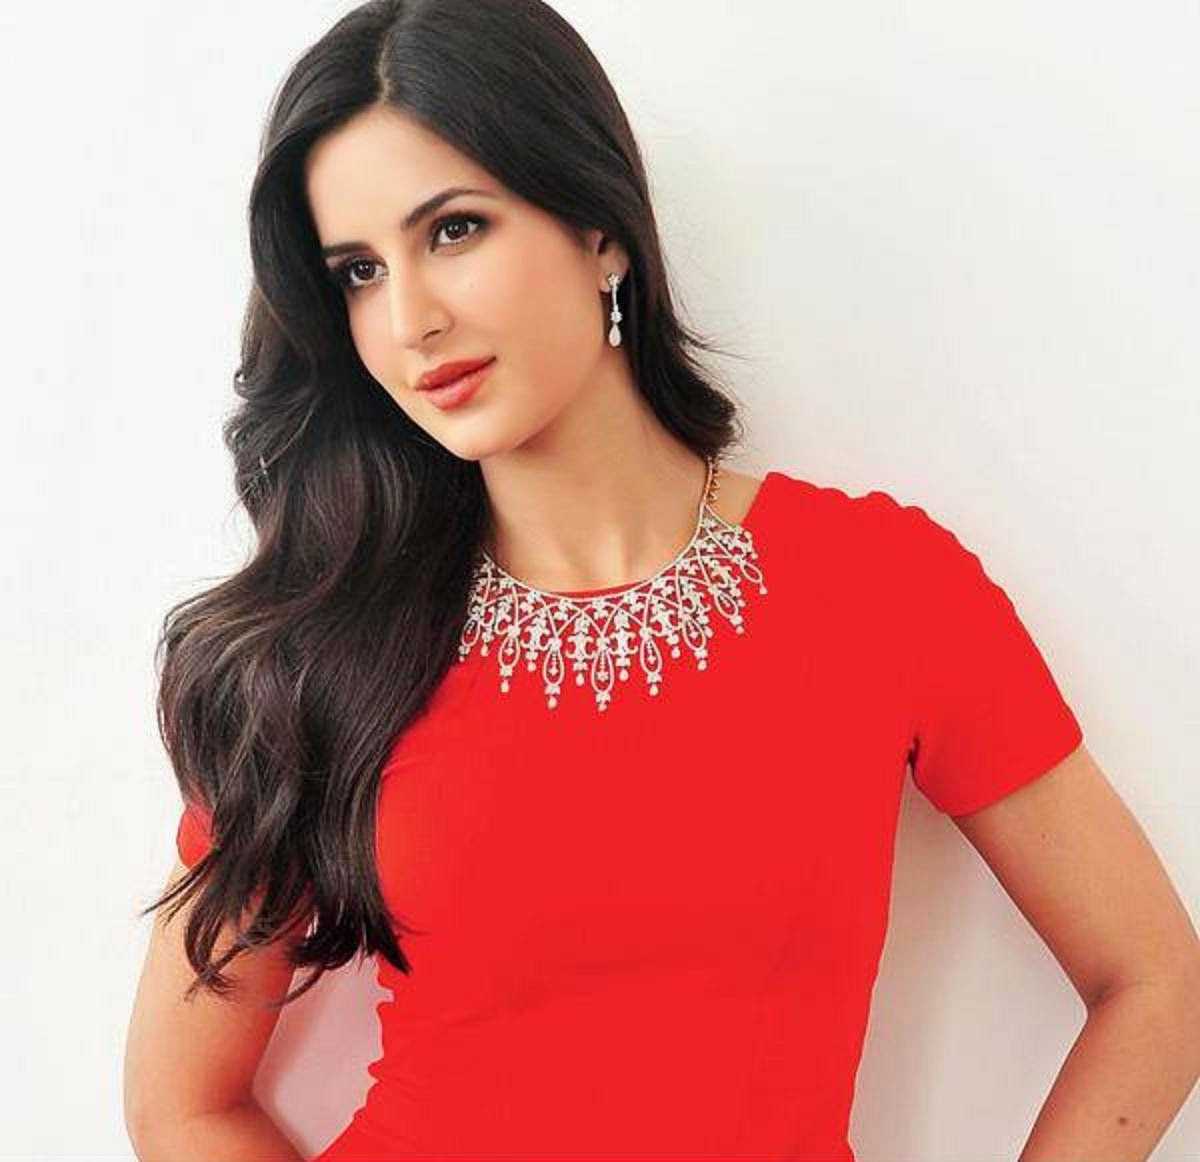 Download Katrina Kaif HD Wallpapers for Mobile and Computer